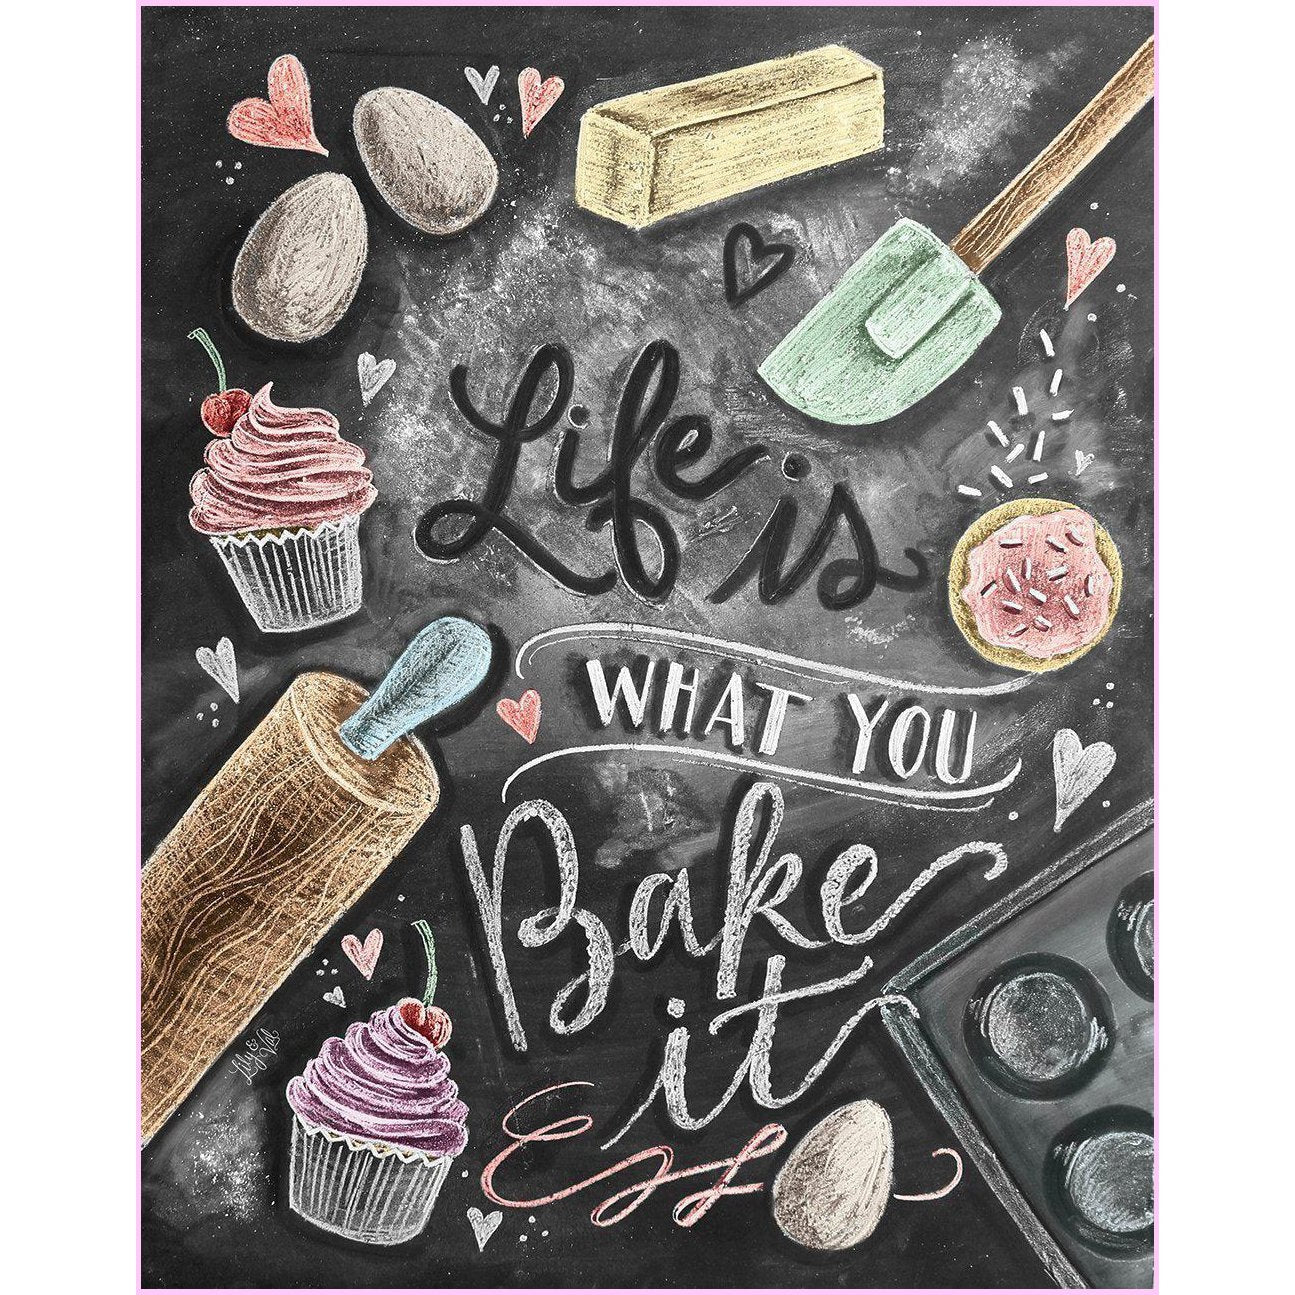 life is what you bake it full drill diamond painting by create love share